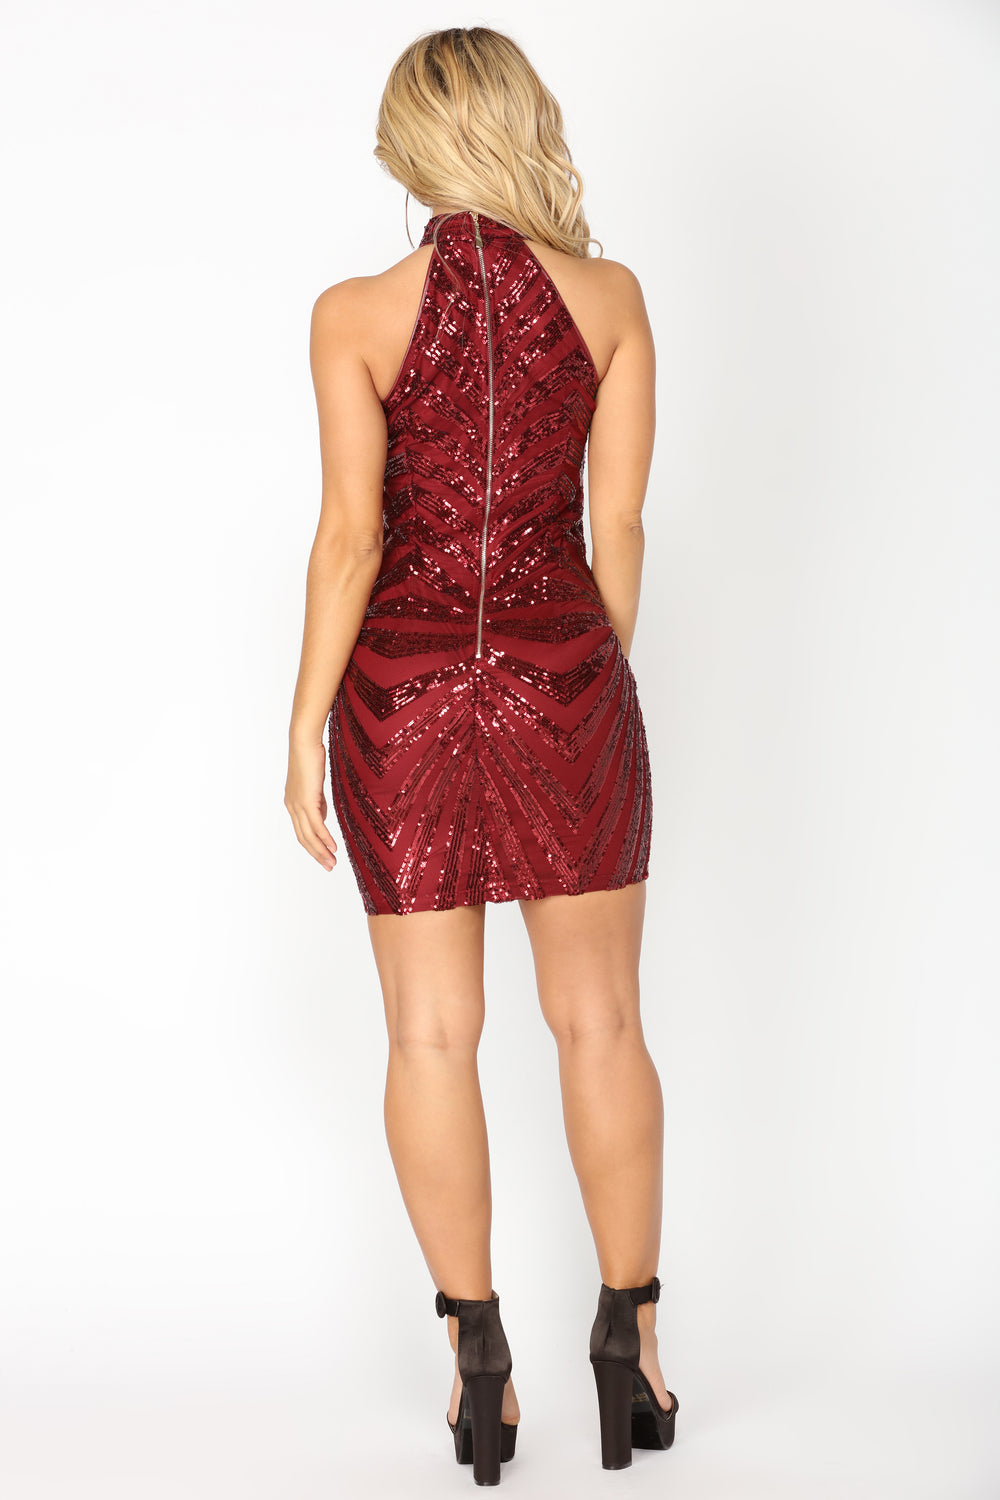 Diva Vibes Dress - Burgundy